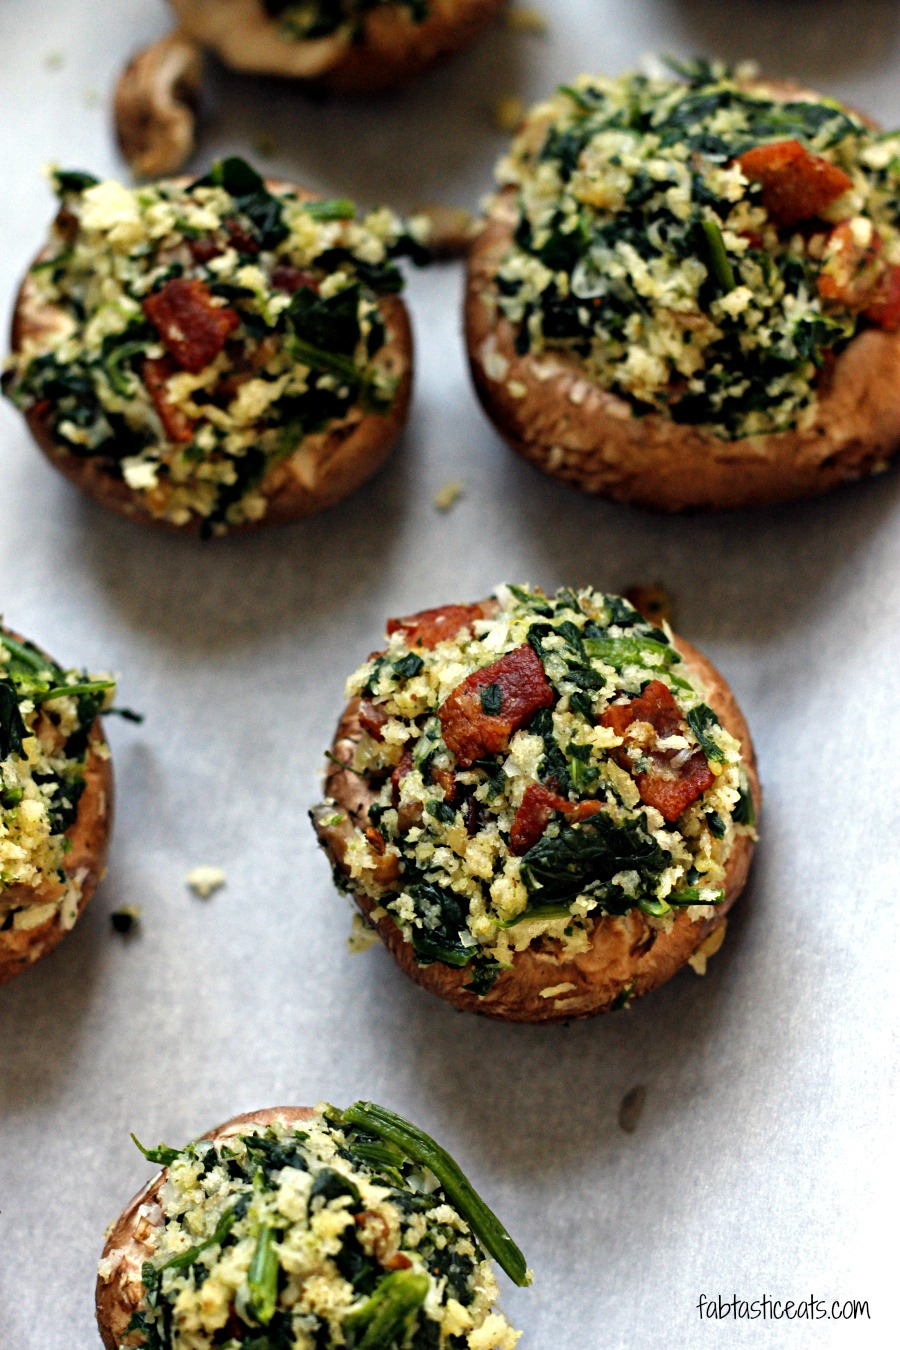 Bacon and Spinach Stuffed Mushrooms with a Balsamic Glaze | Fabtastic ...